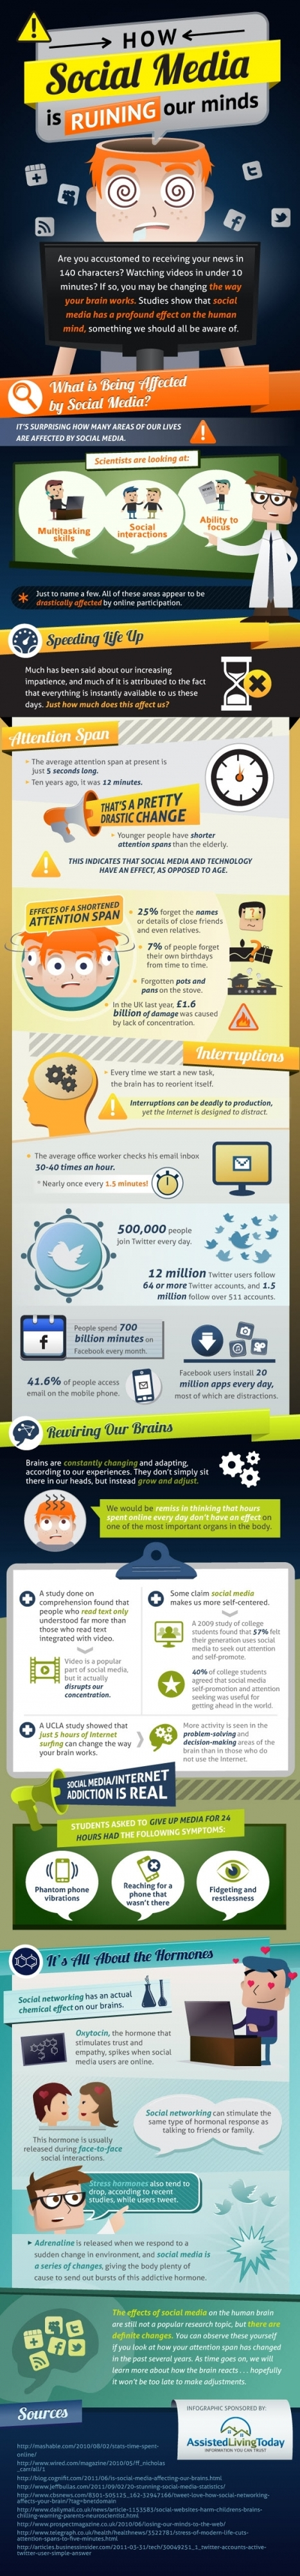 How Social Media is Ruining Our Minds - Infographic >> Malhar Barai   Quick Social Media   Scoop.it